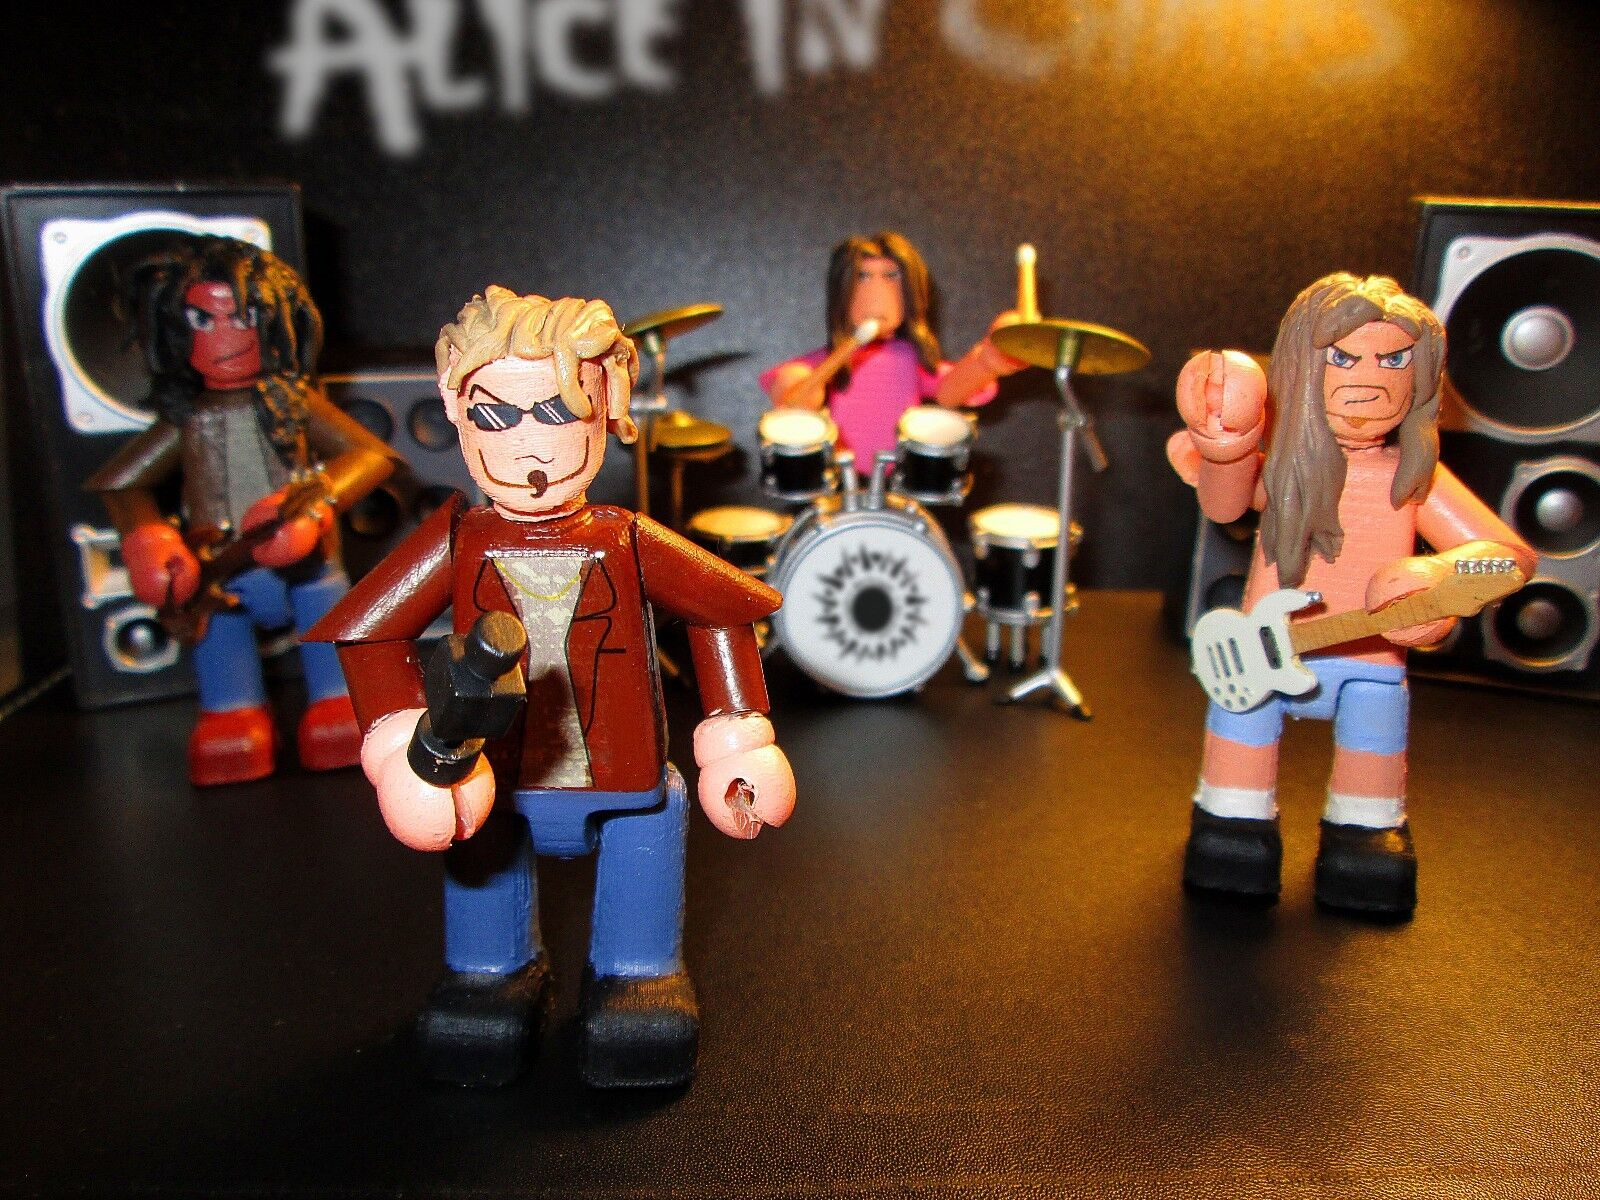 Alice in Chains 3 inch minifigure set 4 x handmade OOAK jointed figures